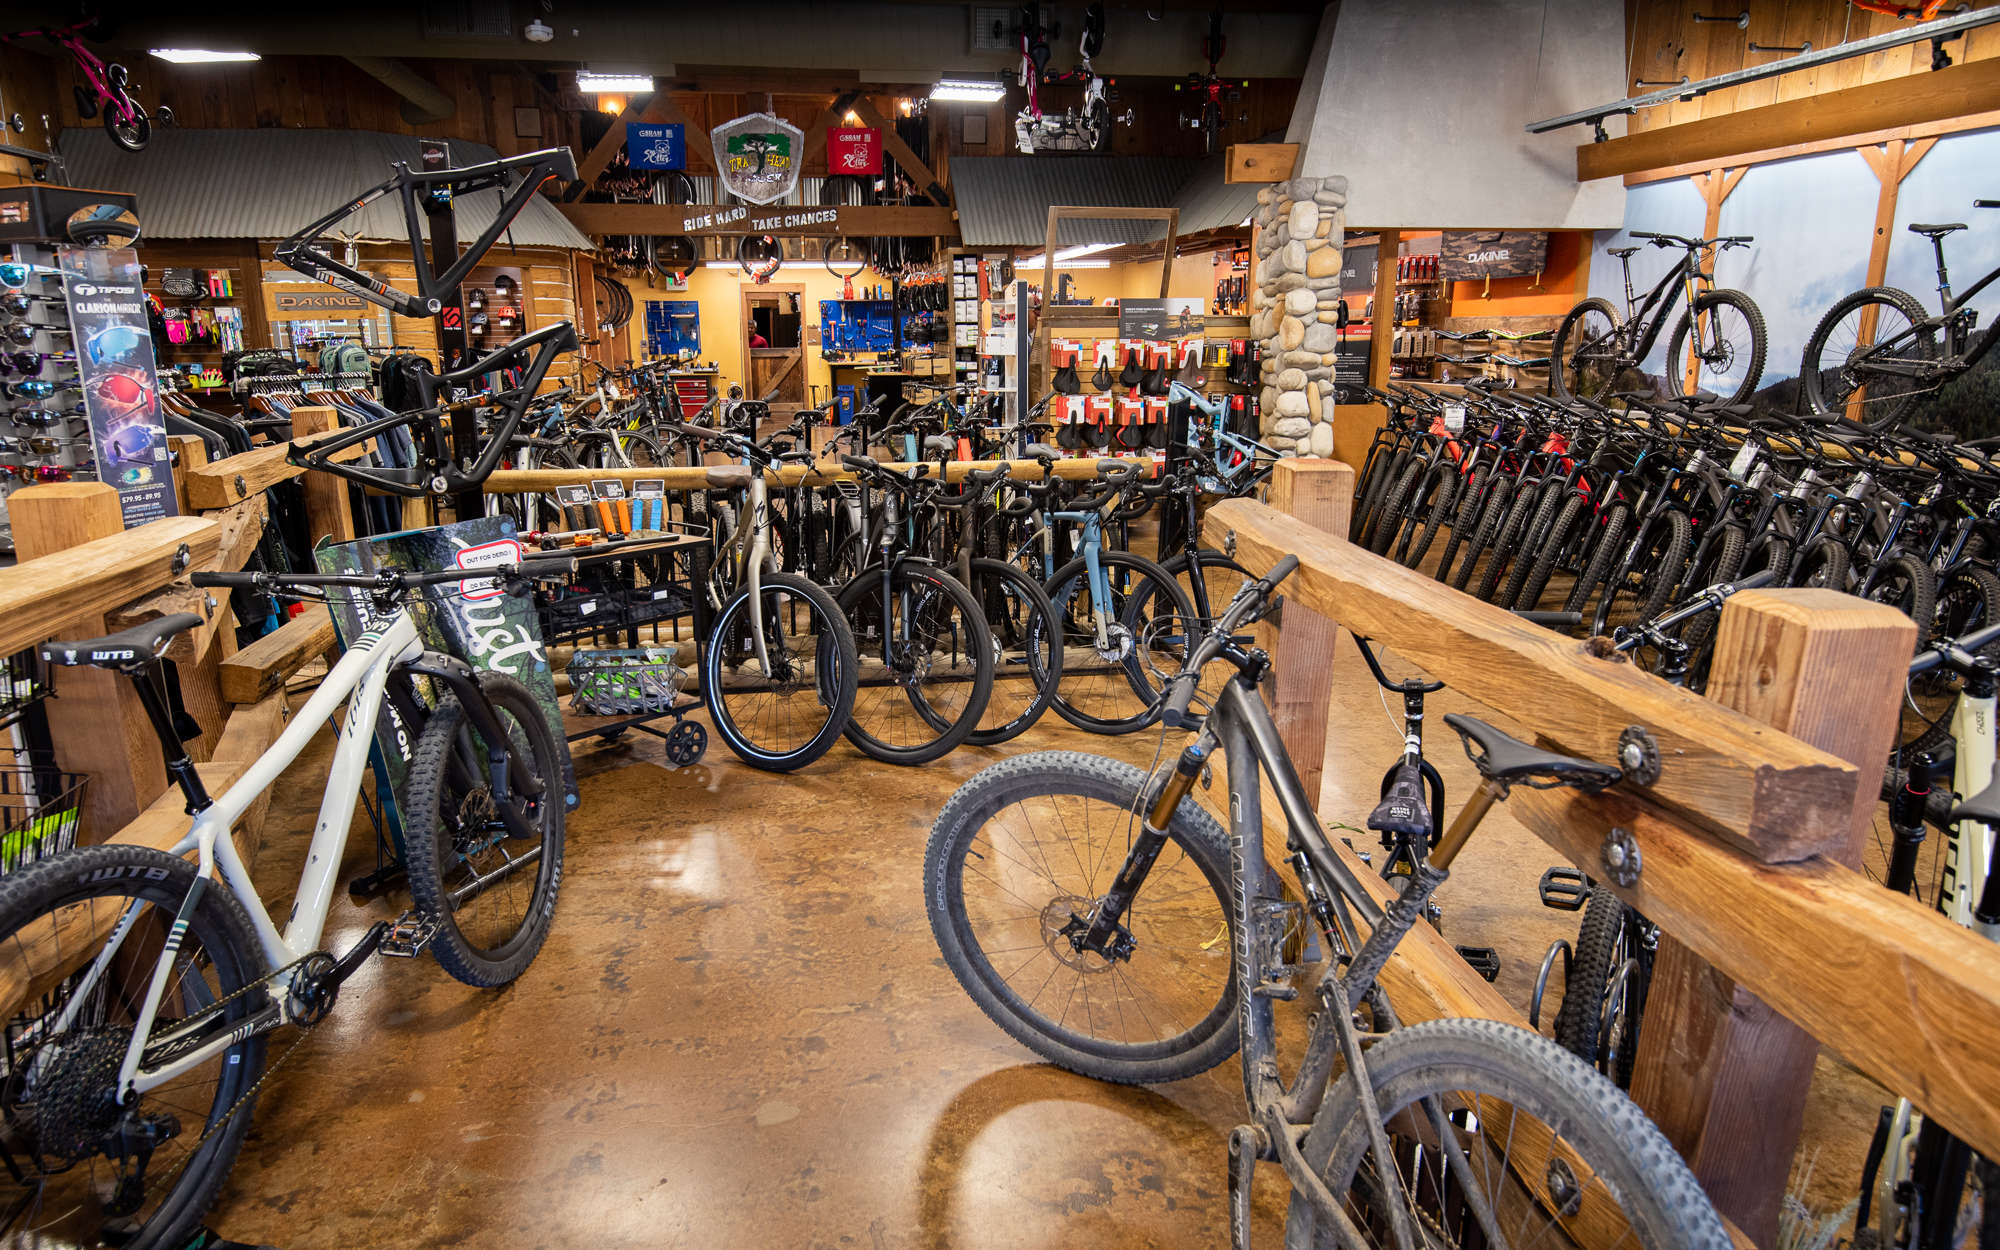 Interior of trail head cyclery with bikes